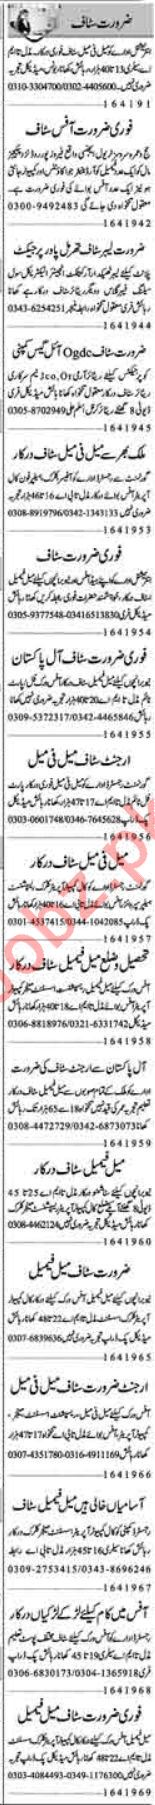 Daily Dunya Newspaper Classified Jobs 2019 For Lahore